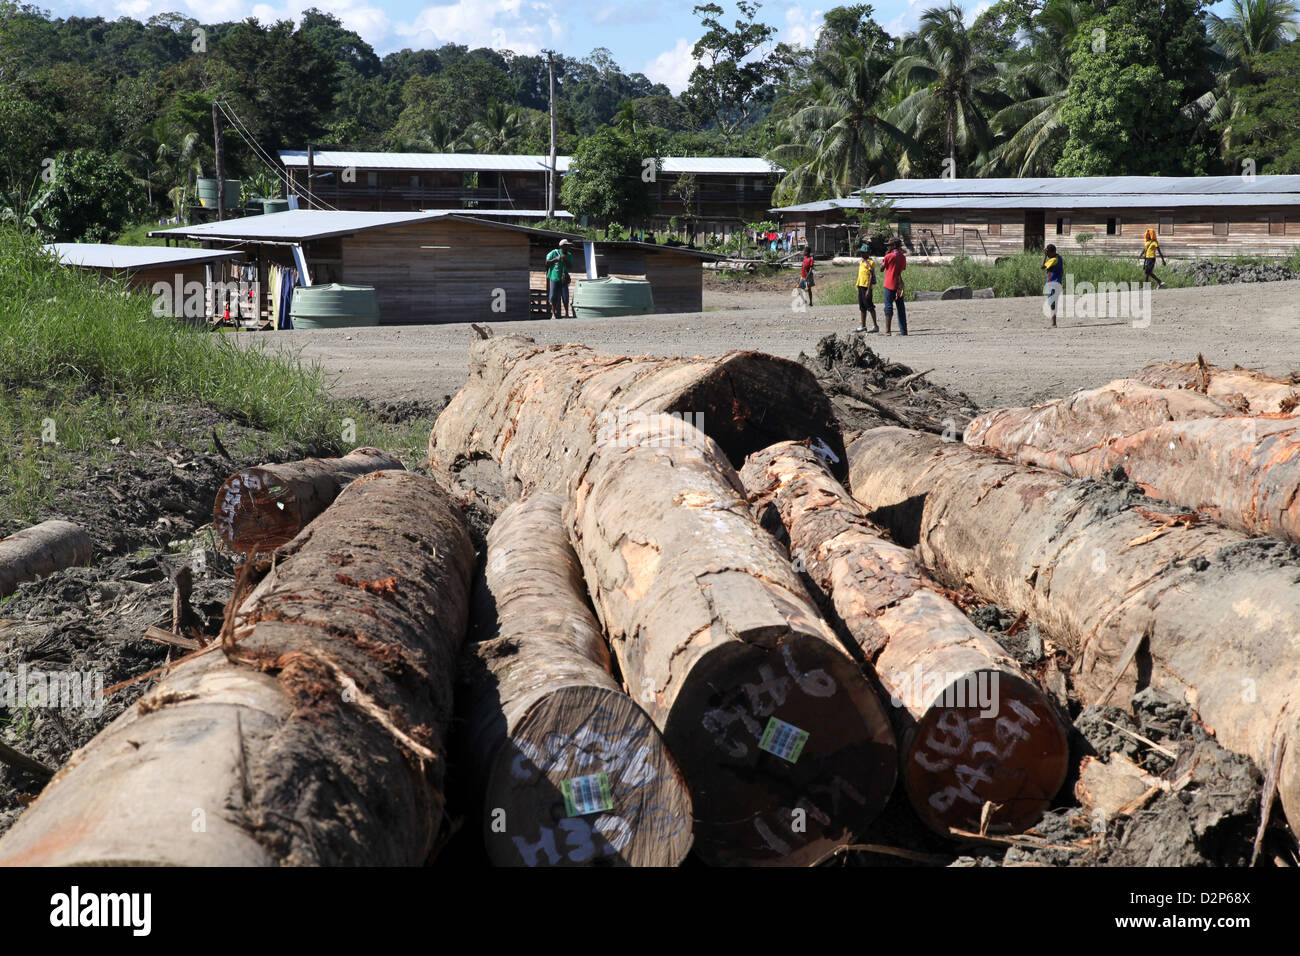 Tree trunks near a logging workers village in Madang province, Papua New Guinea - Stock Image